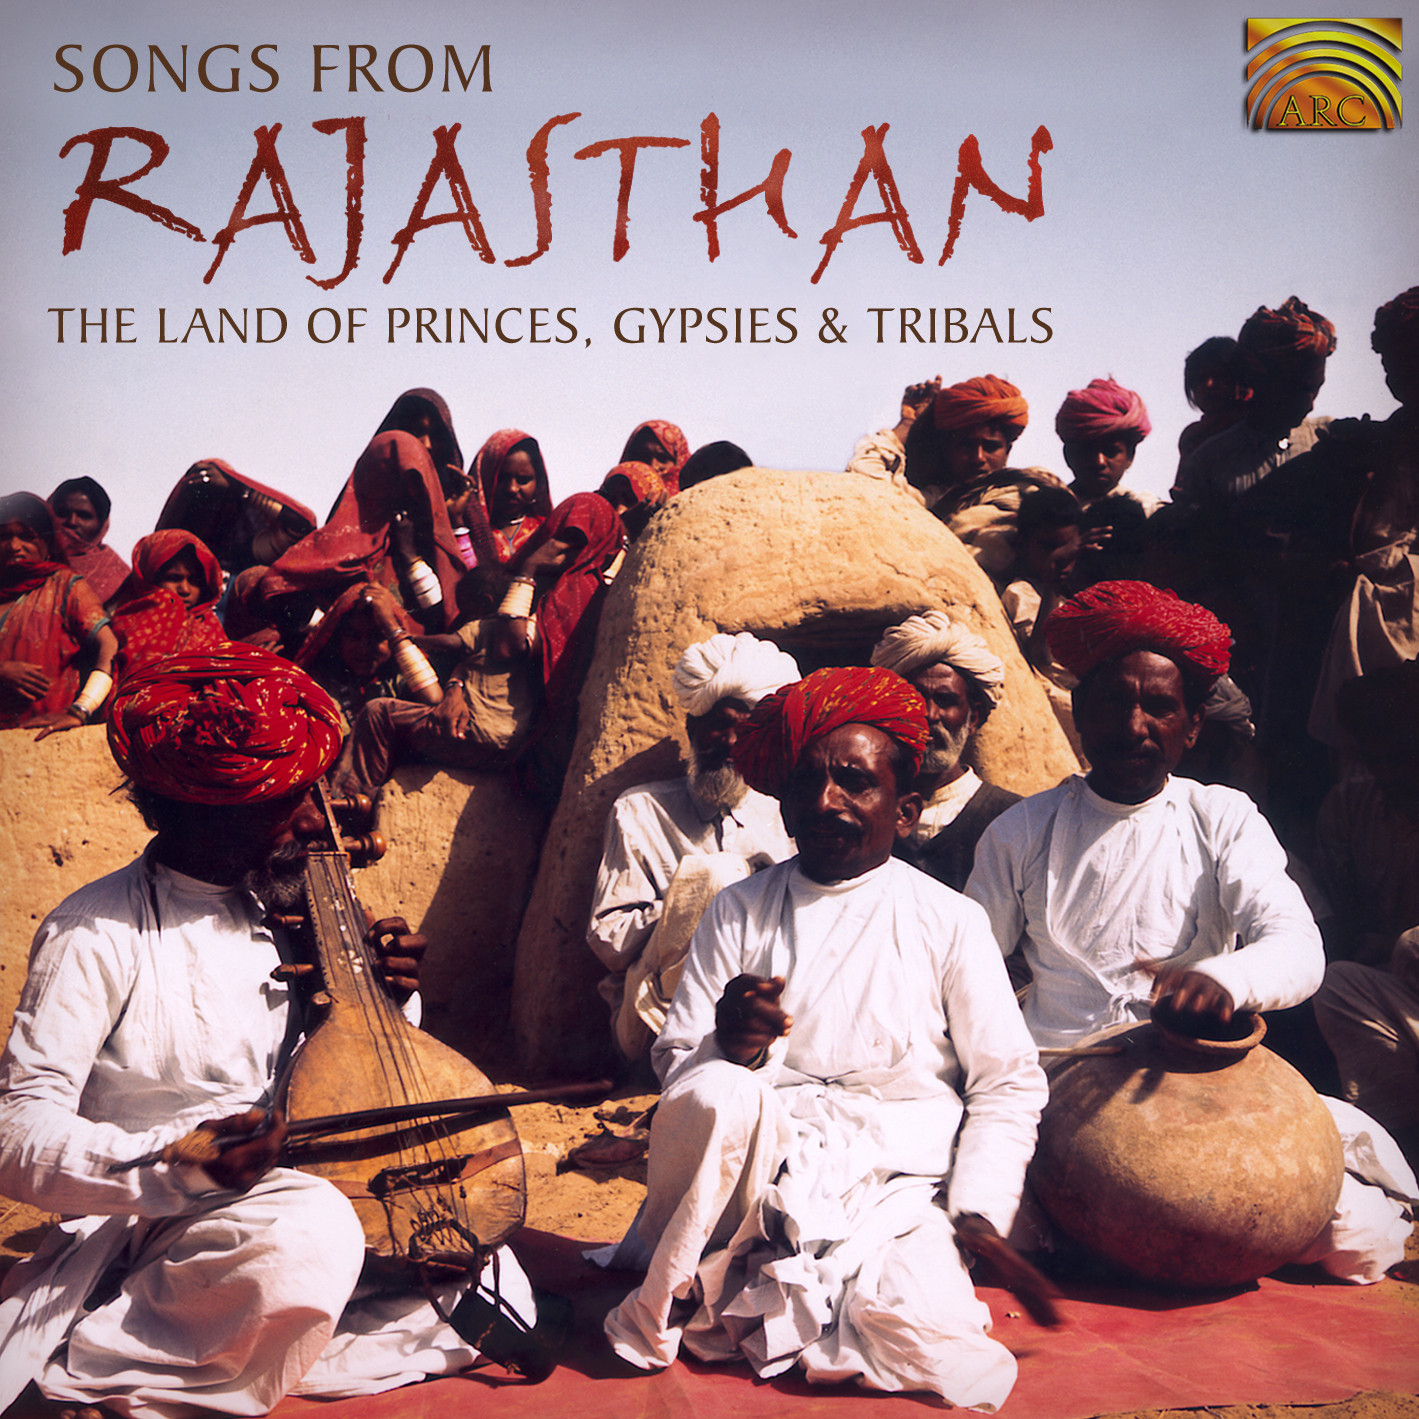 EUCD1641 Songs from Rajasthan - The Land of Princes, Gypsies & Tribals